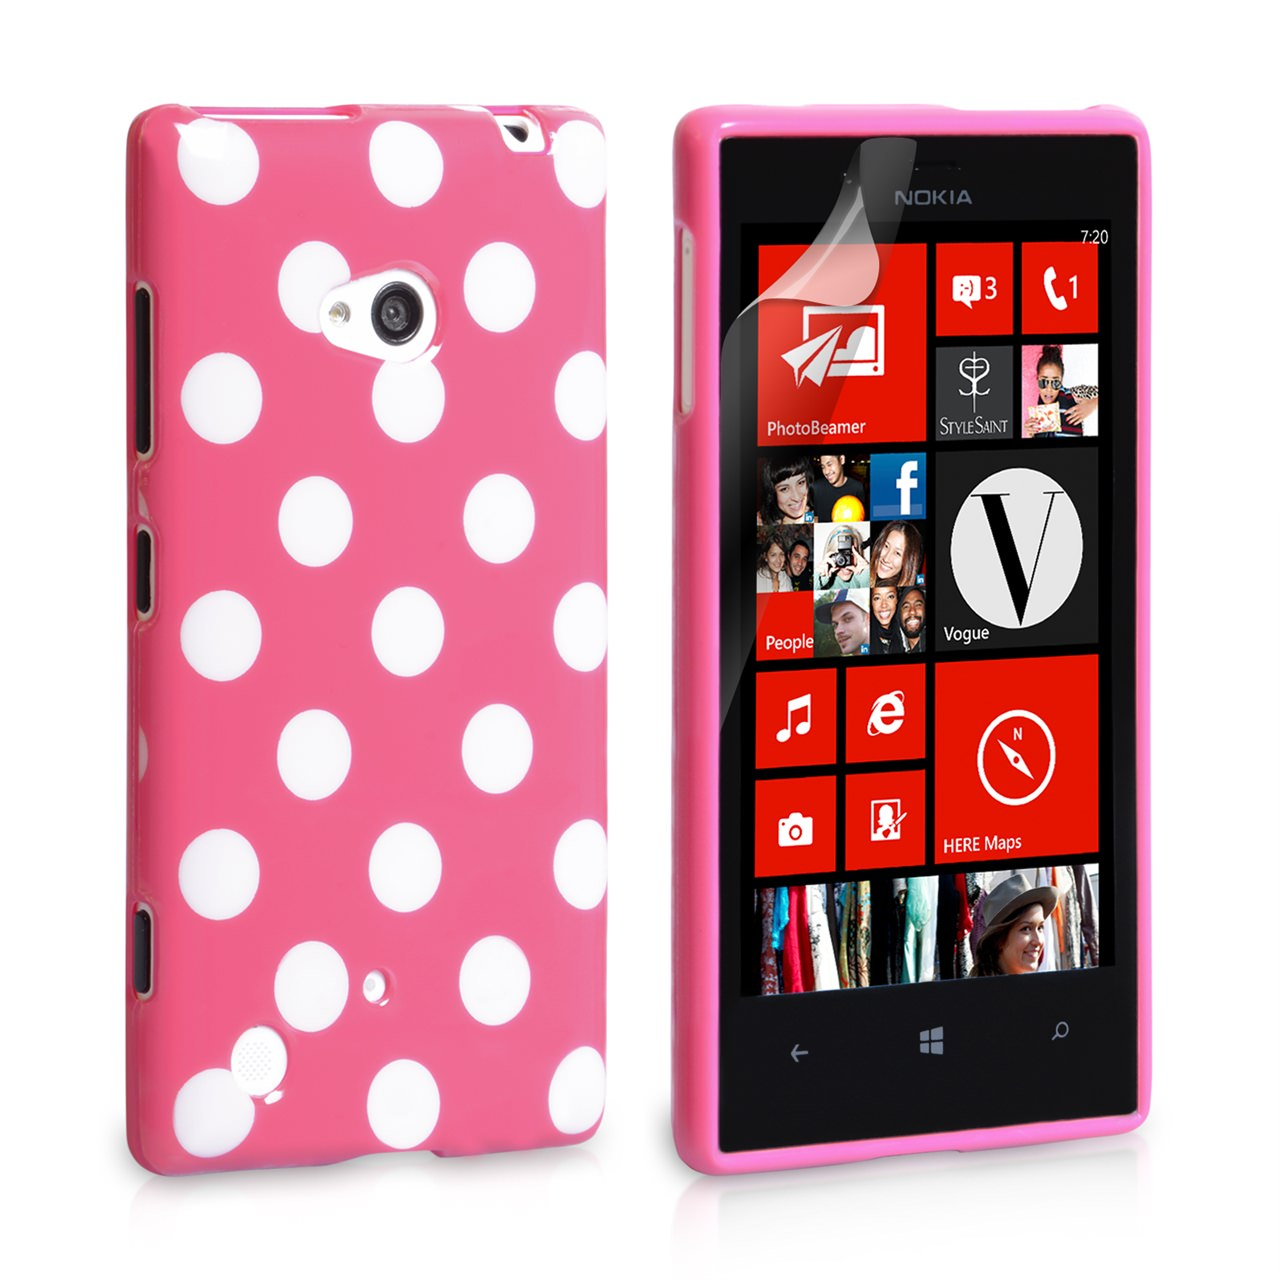 YouSave Accessories Nokia Lumia 720 Polka Dot Hard Case - Hot Pink